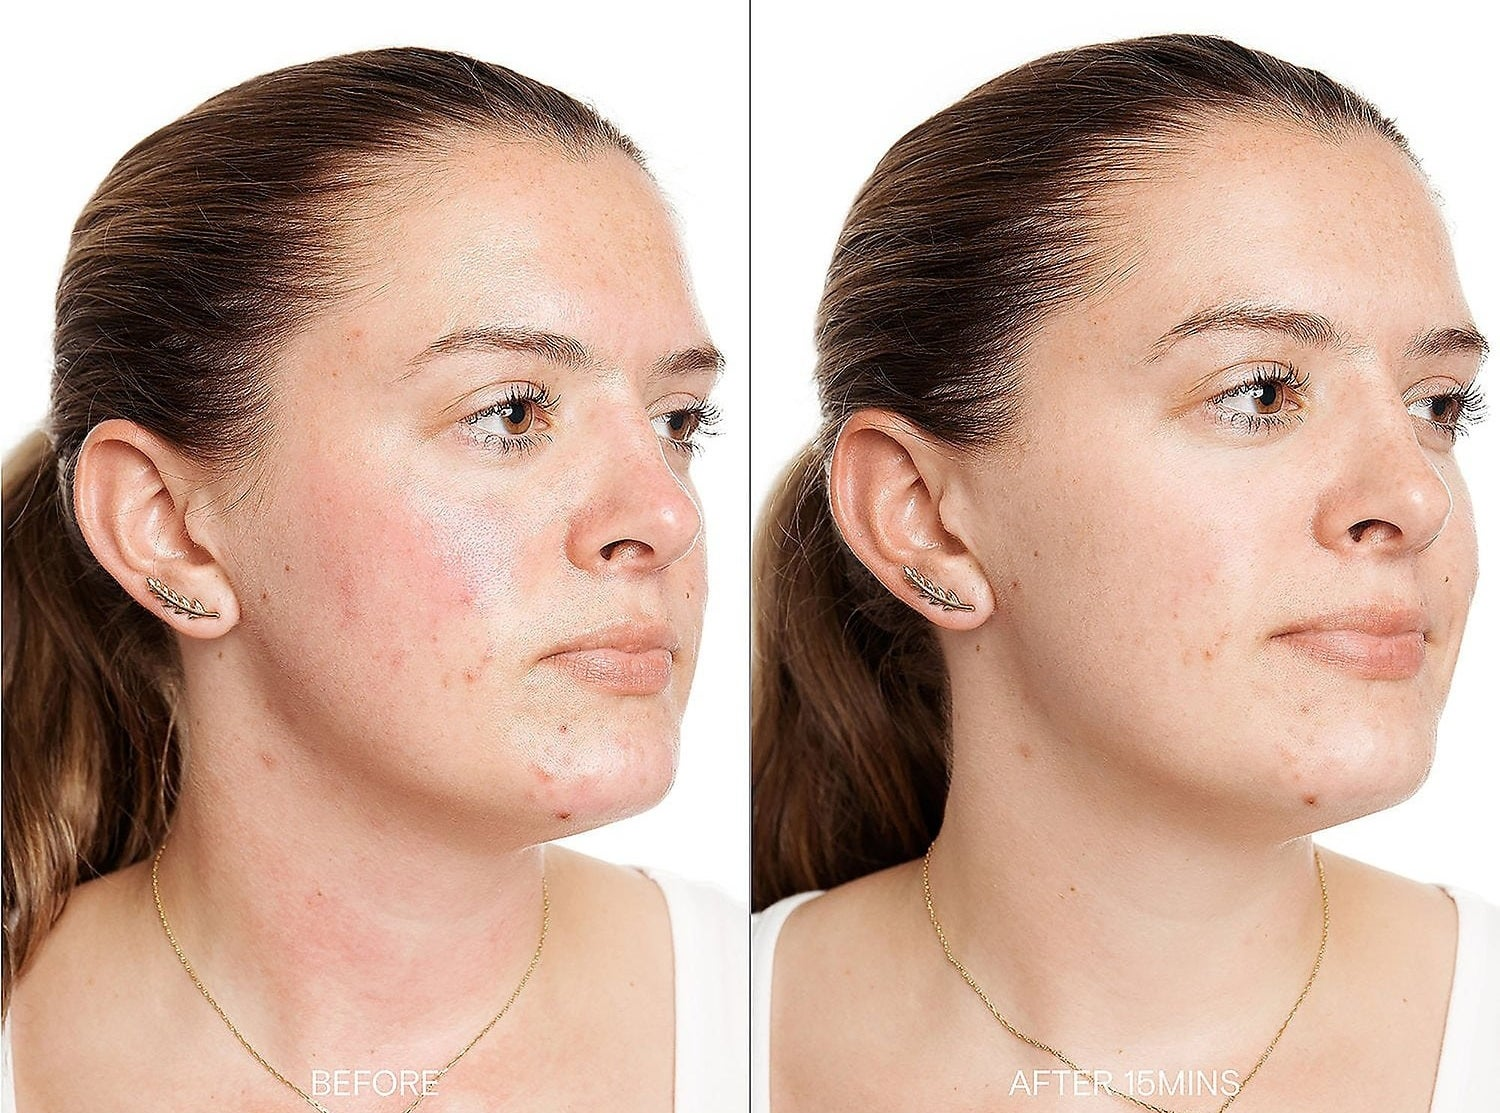 """model with redness on necks and cheeks labeled """"before"""" on the left, same model with no redness labeled """"after 15 mins"""" on the right"""